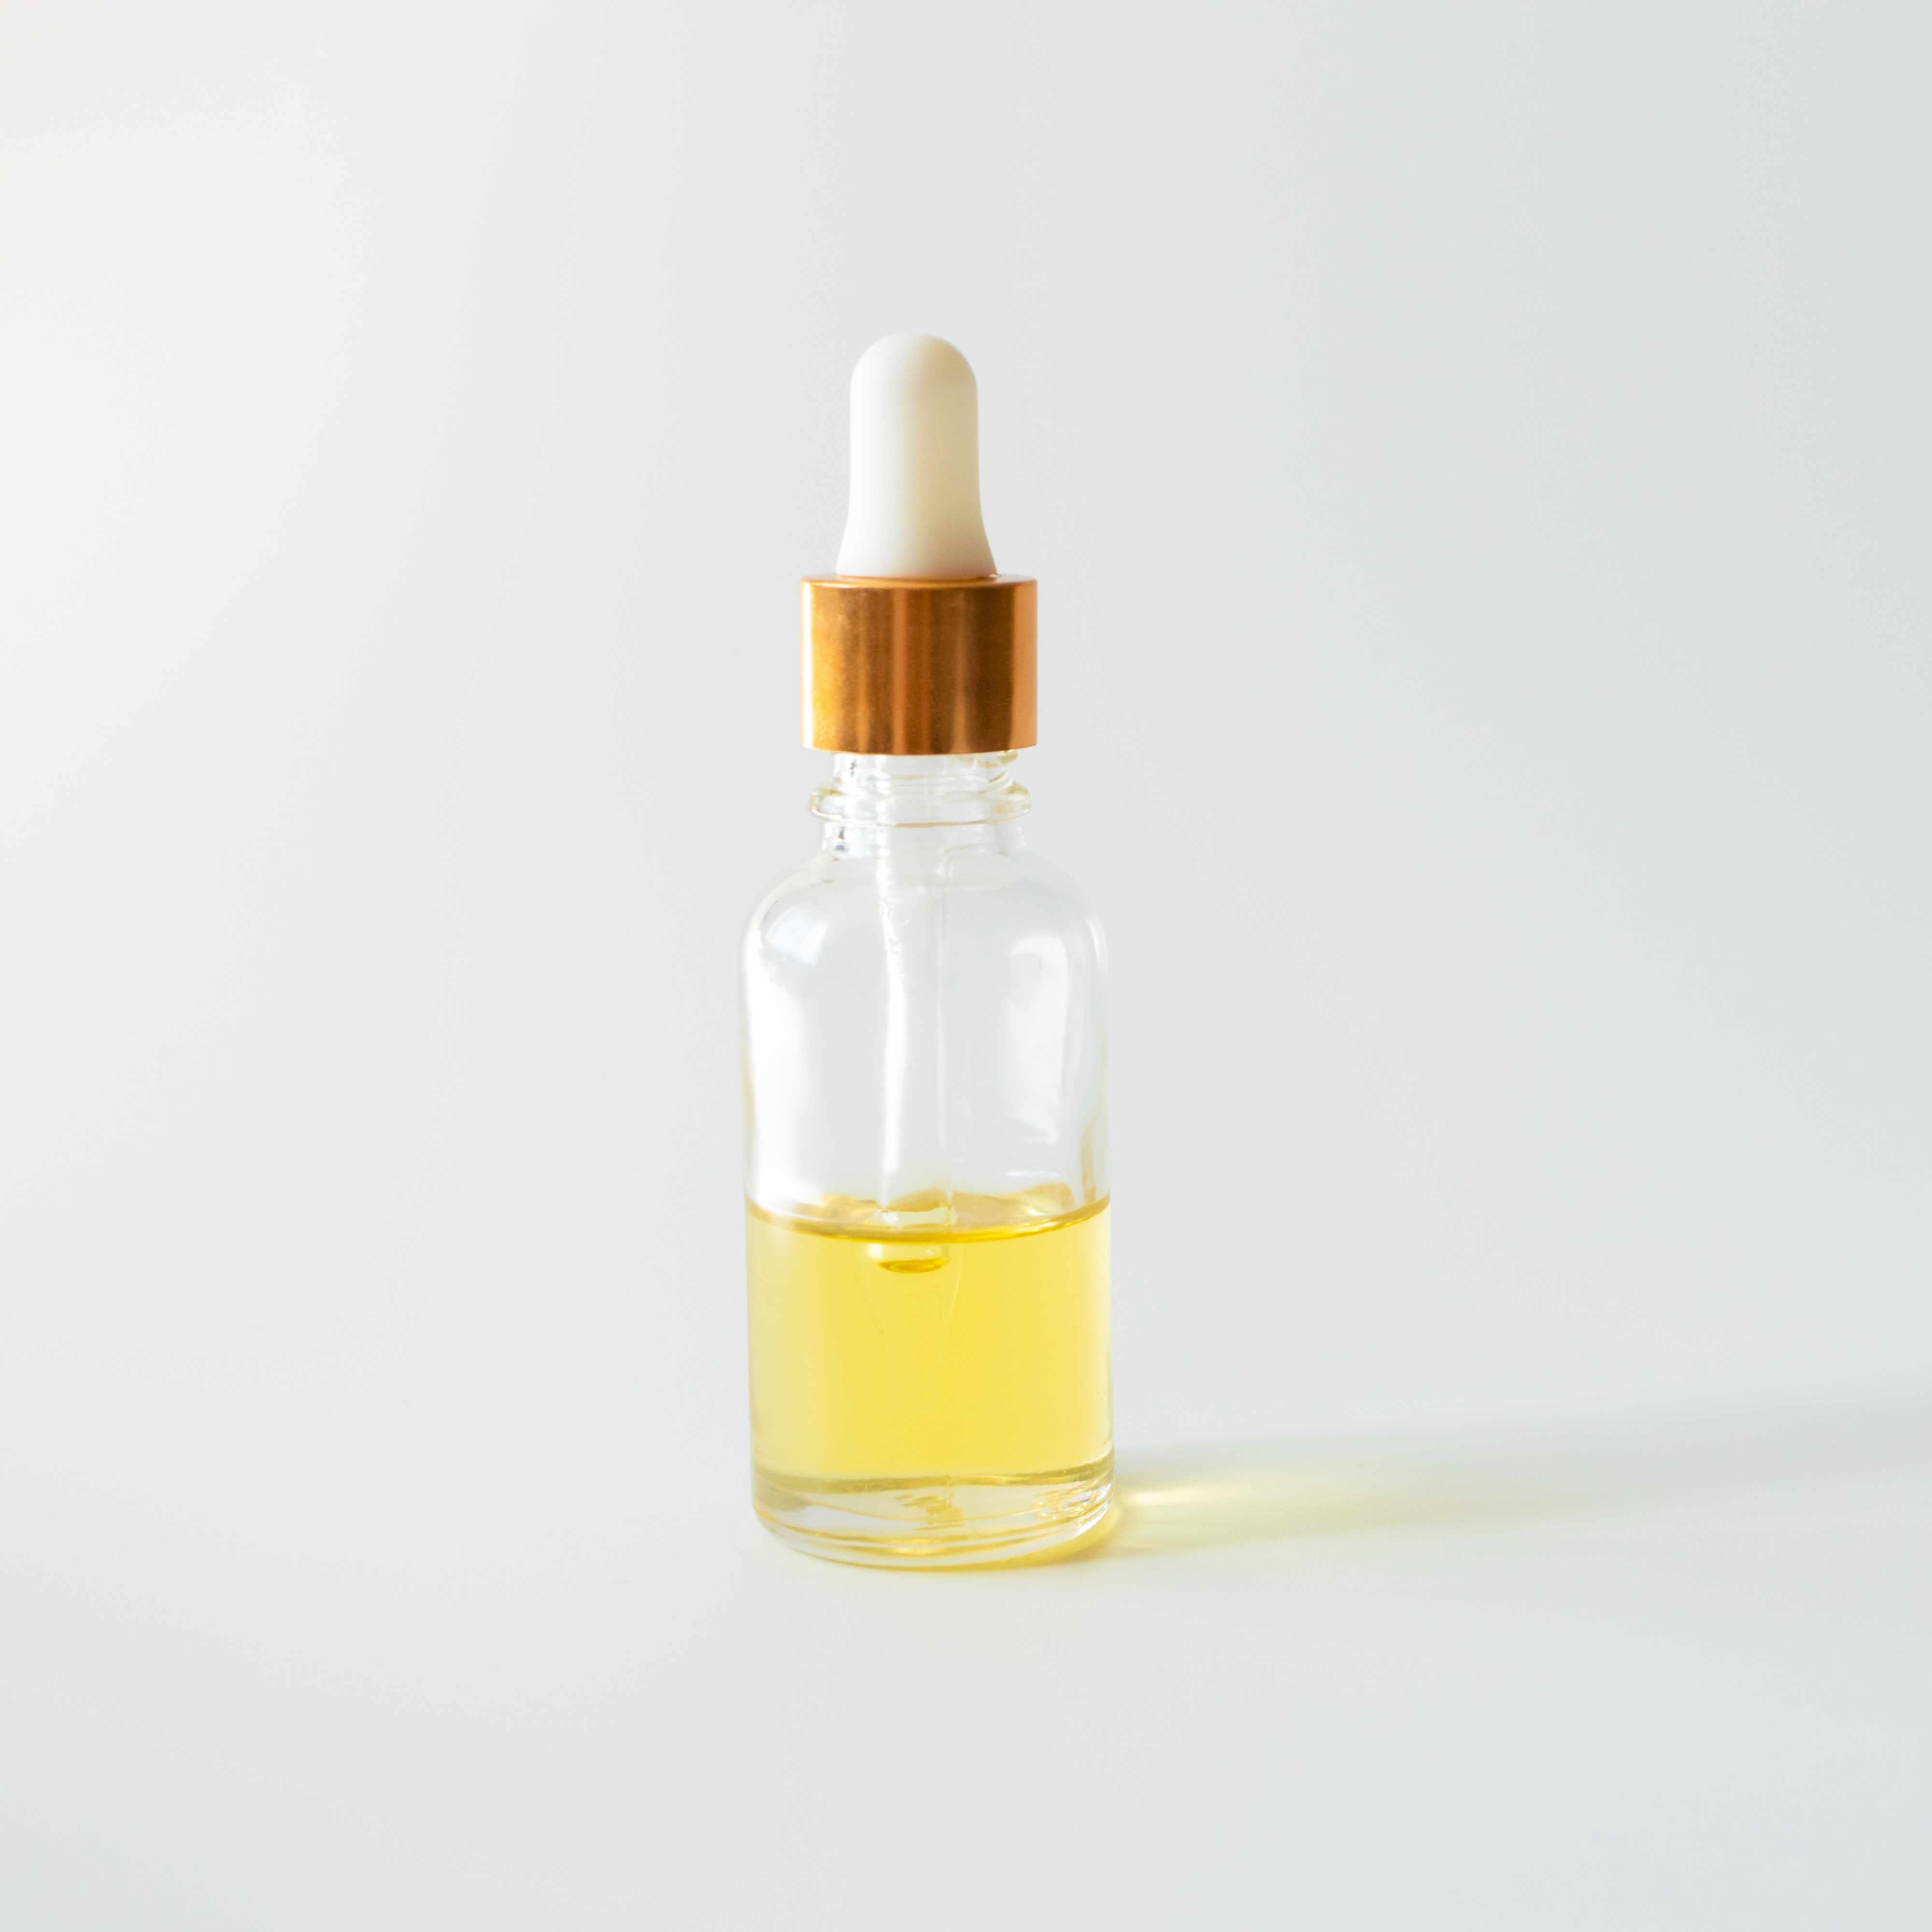 How to treat dry lips - Bottle of soothing oils